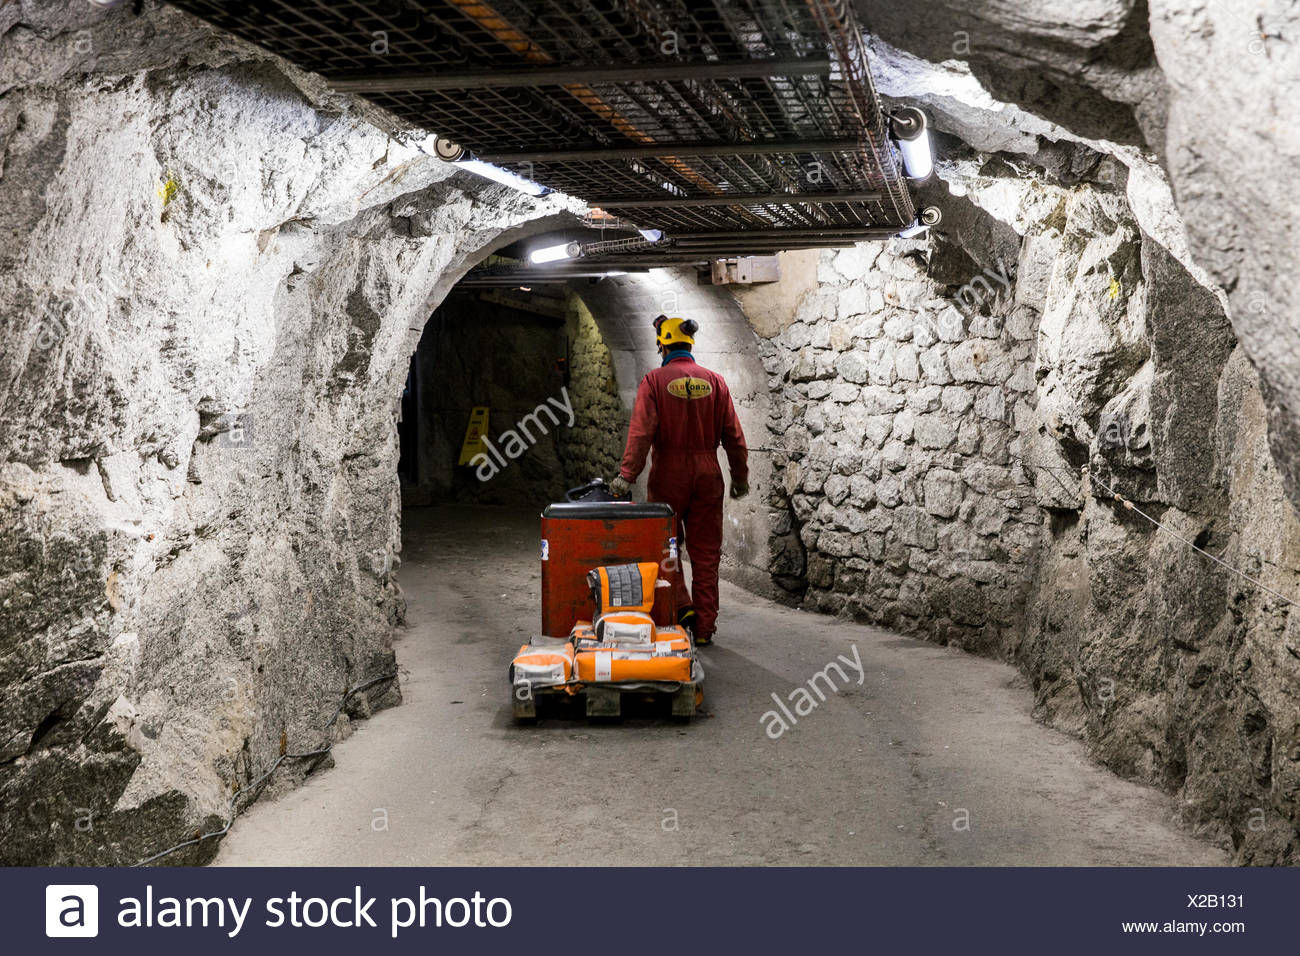 Worker carrying cement on electric pallet truck in of tunnels of Aiguille du Midi, Chamonix Mont-Blanc, Haute Savoie, France - Stock Image